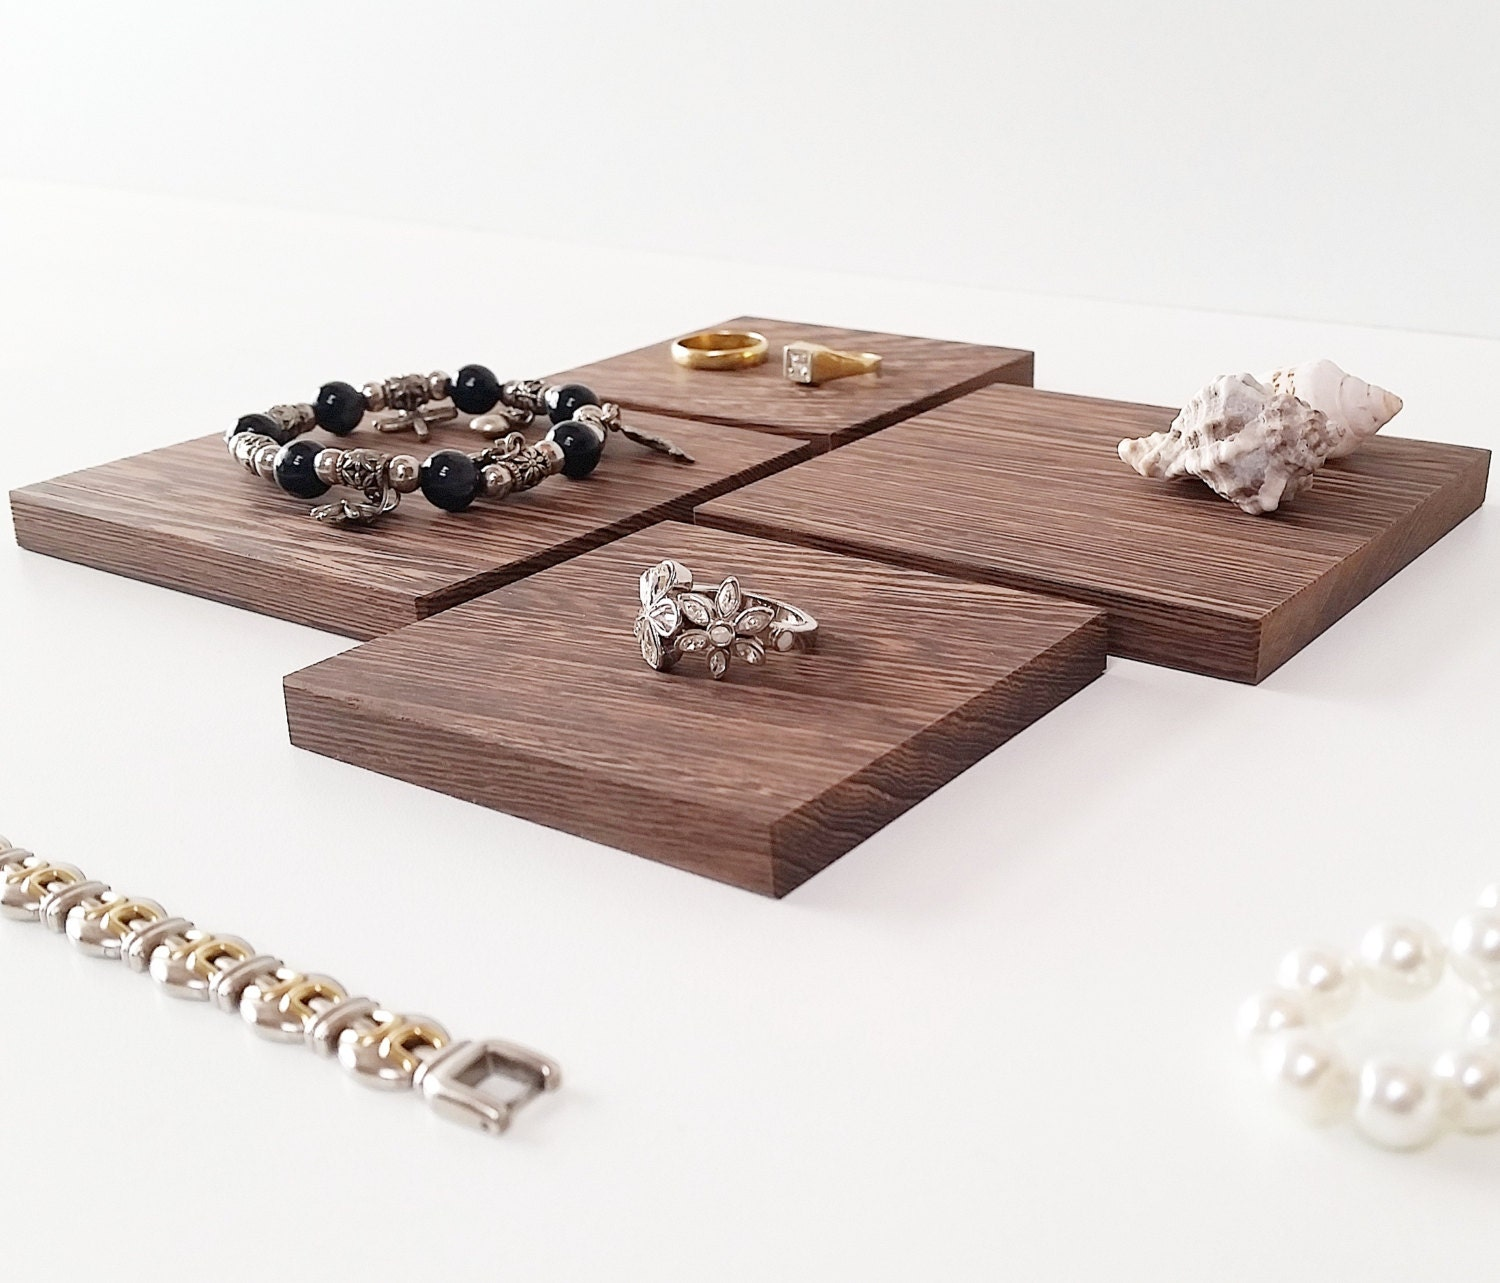 Make Your Own Jewellery Display Board: Jewelry Display Board Set For Craftshow Etalage Wenge Wood